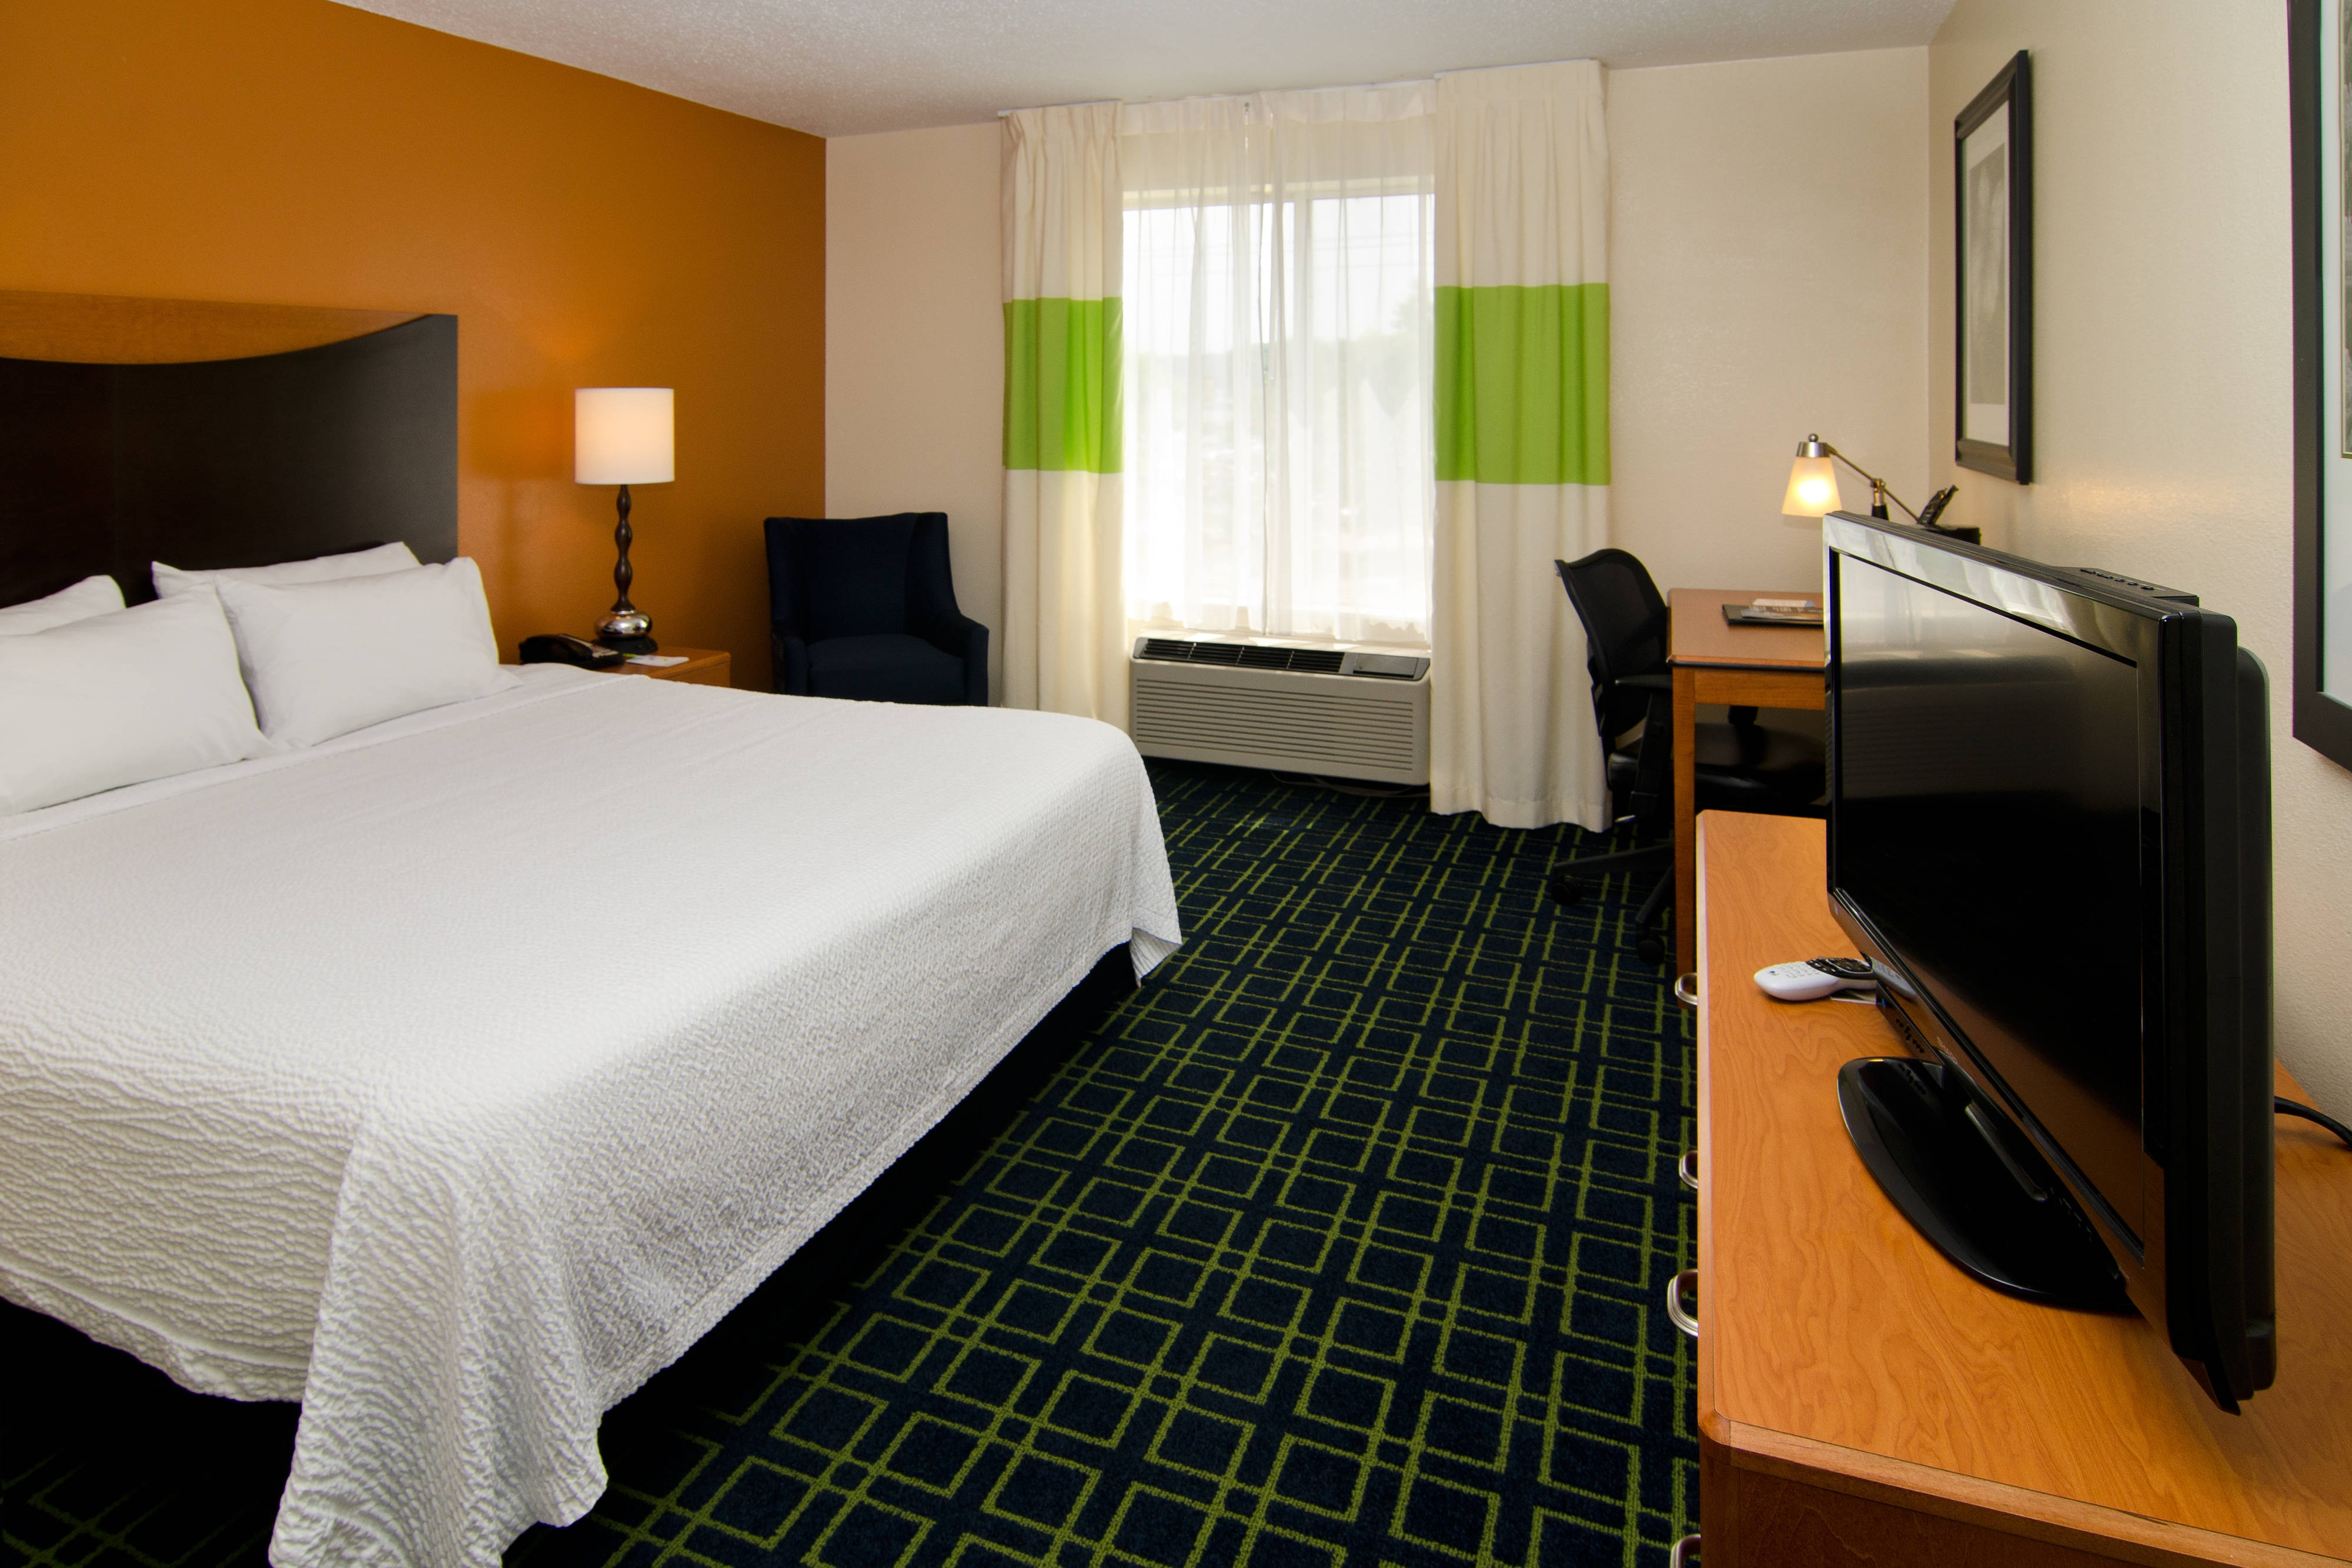 Hotel Rooms Near Busch Stadium